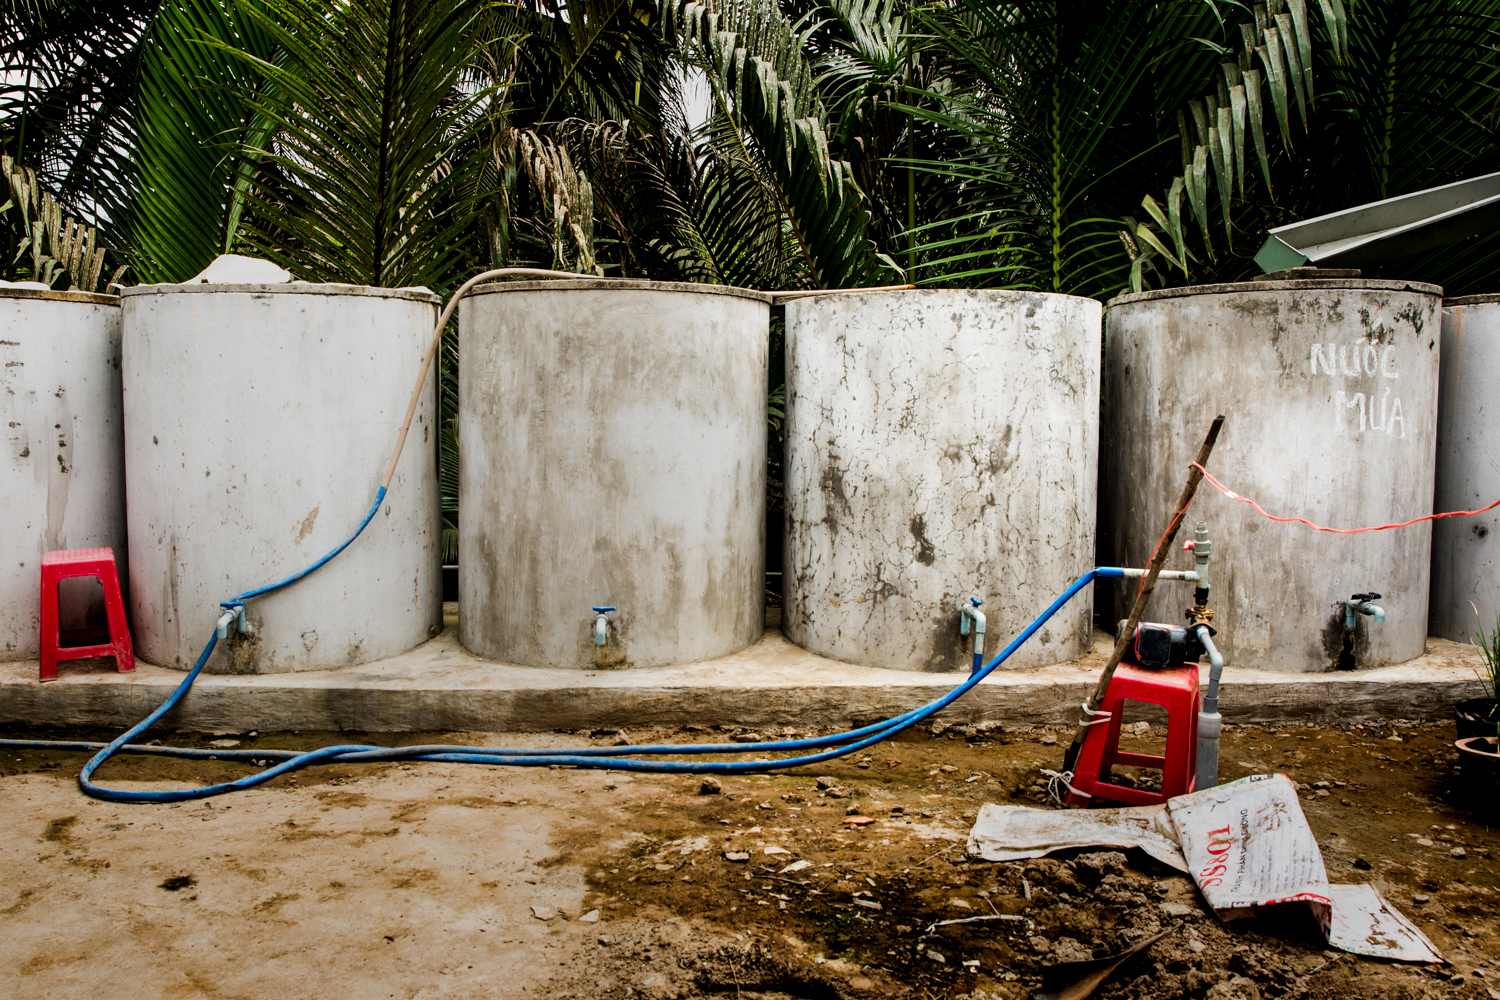 Tanks for rainwater, that when full at the end of the rainy season, are usually enough to carry the family through until it starts again. Since it's already late, and not expected for at least another month, many have depleted their stocks and now must purchase water for themselves and their animals. Those lucky enough to have a well have another option, but the wells are becoming increasing unreliable as well.